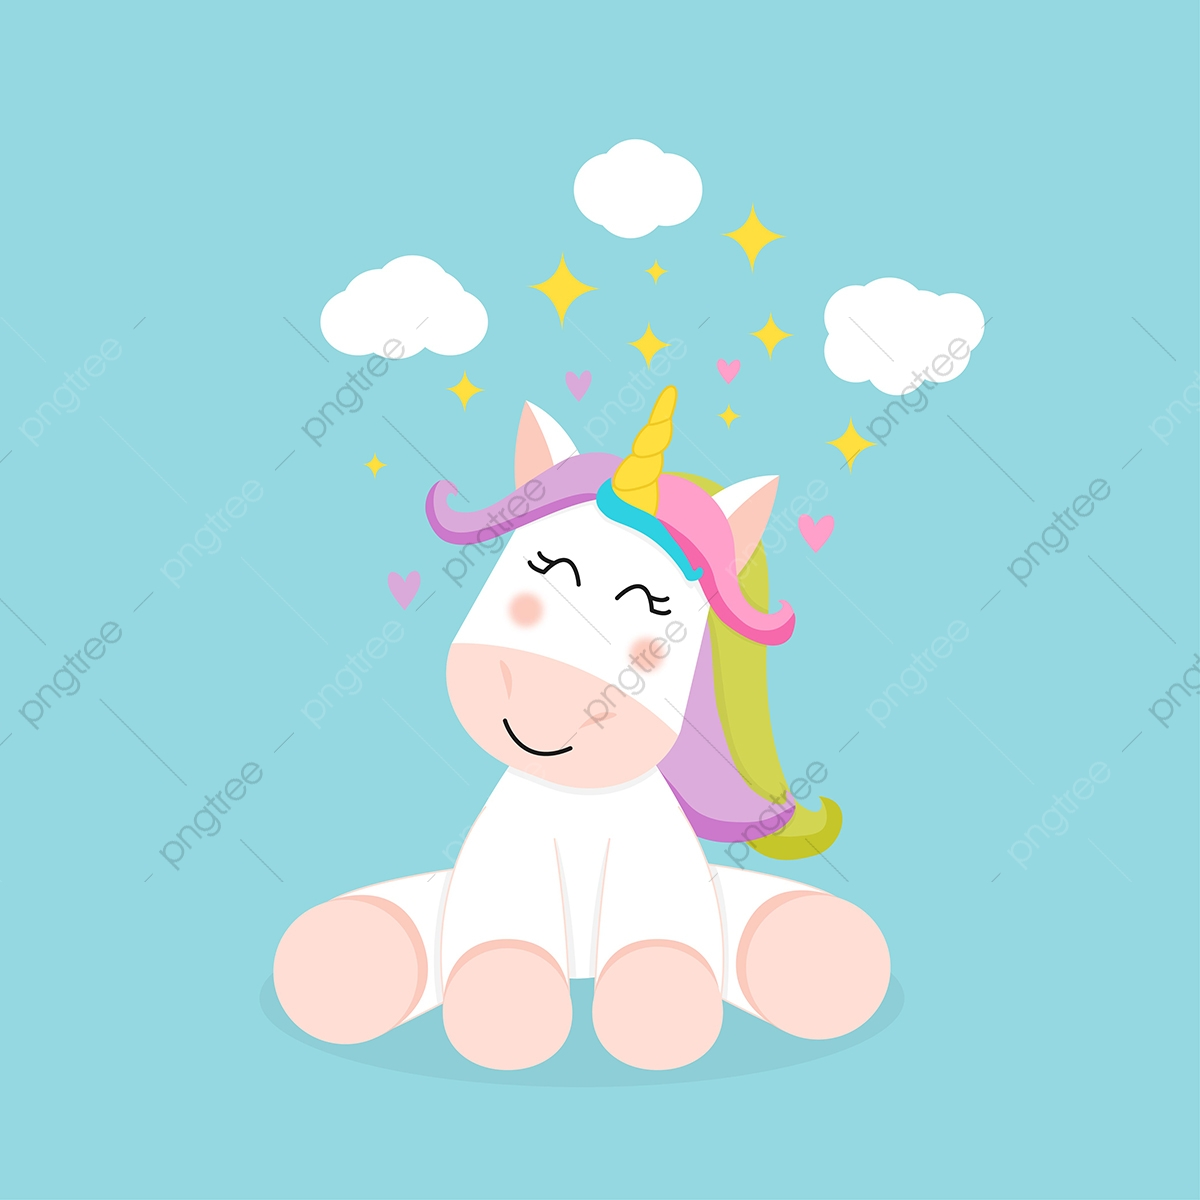 Cute Sitting Unicorn Vector Cute Clipart Unicorn Illustration Png And Vector With Transparent Background For Free Download